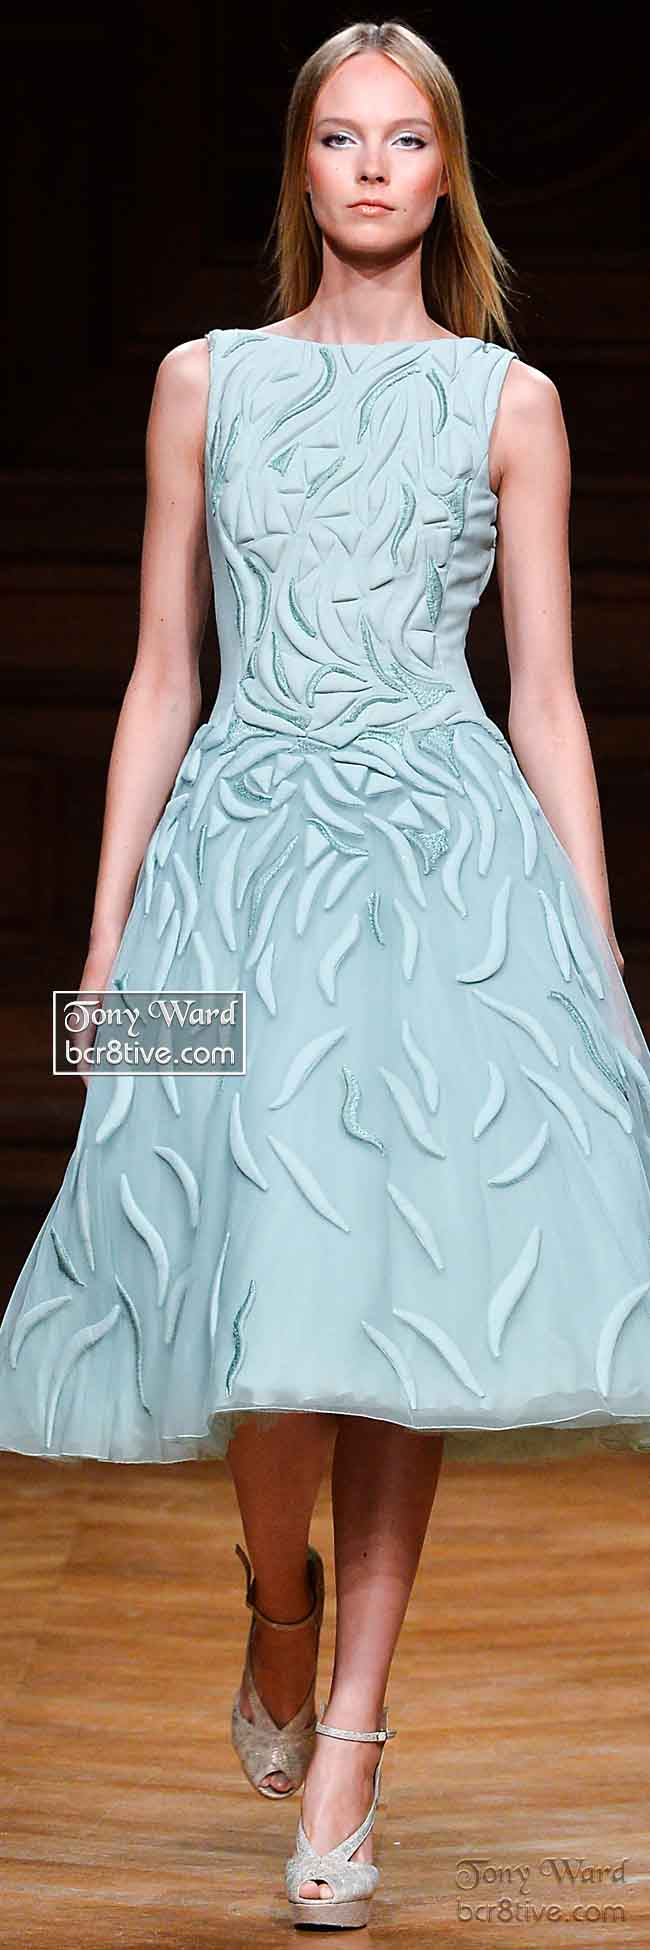 Sculpted Mint Green Mid Length Formal Dress